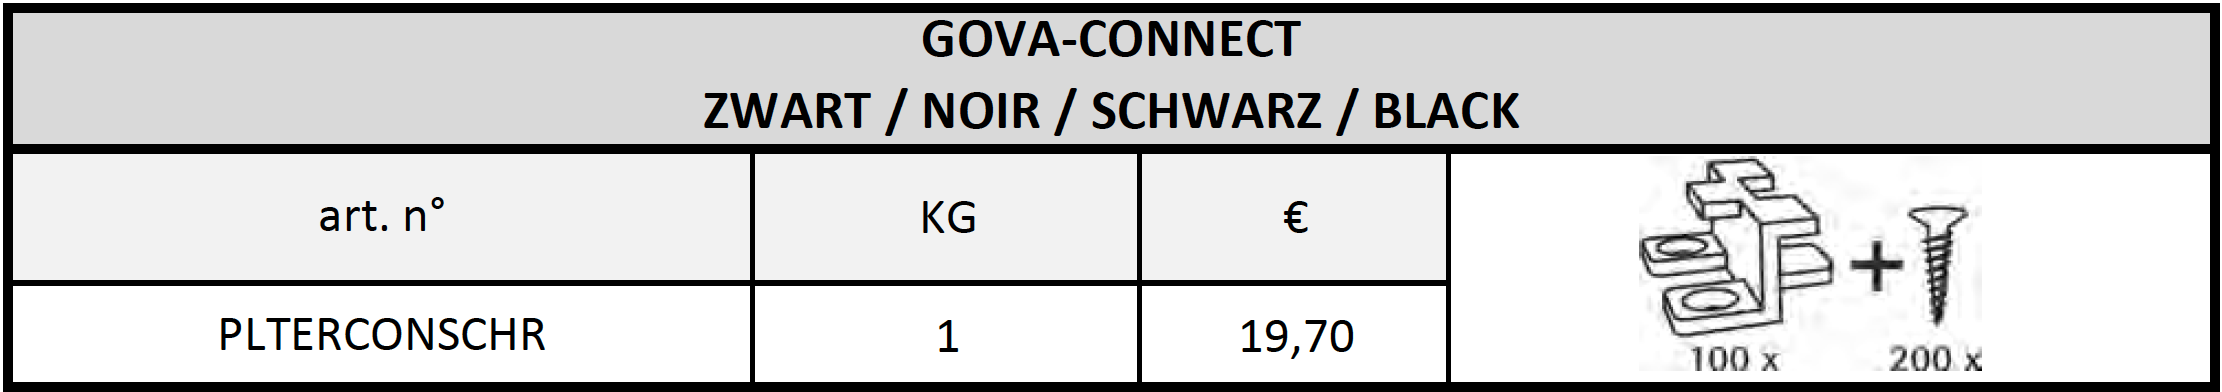 Gova-connect